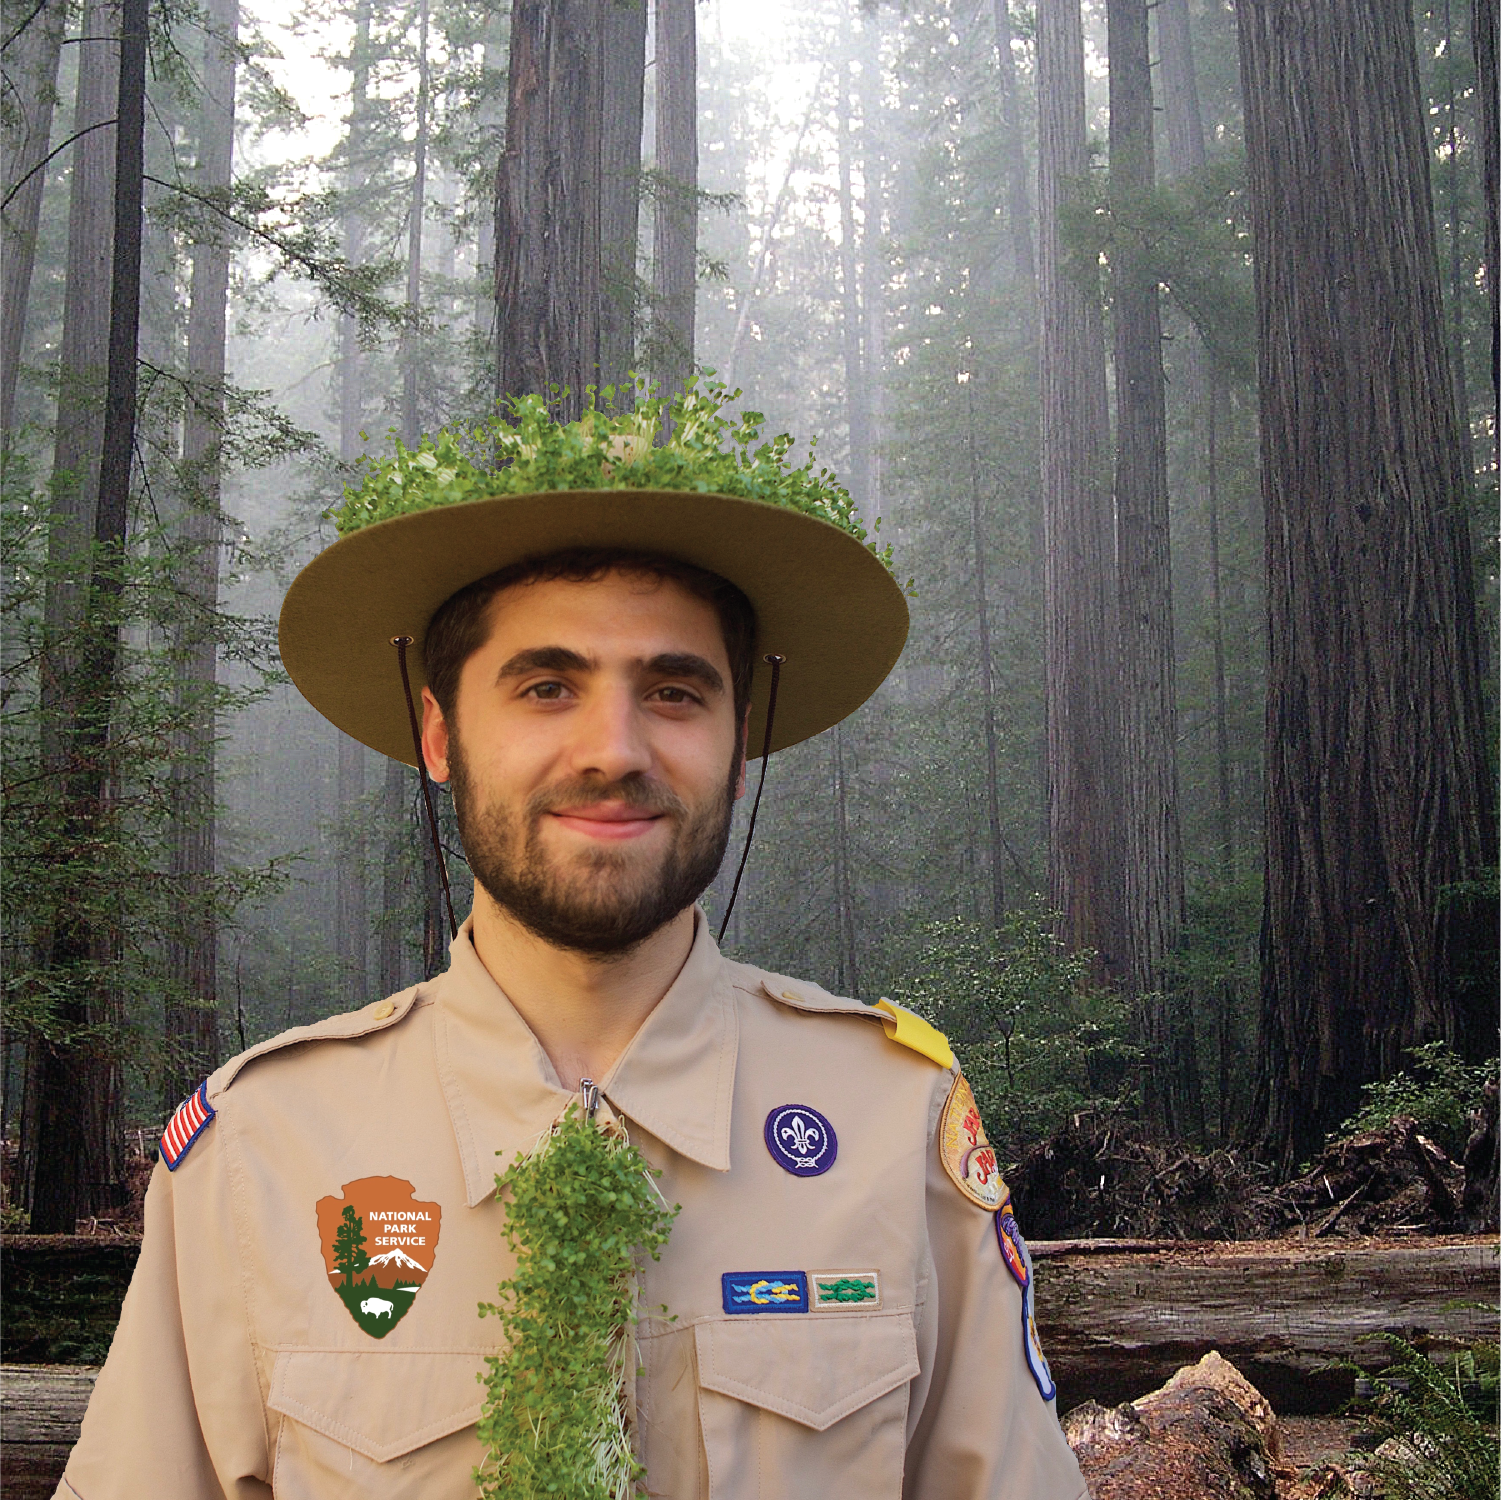 Man dressed as a park ranger with living clothing made of fully grown microgreens.  He has a hat with a living microgreens rim and a microgreens tie.